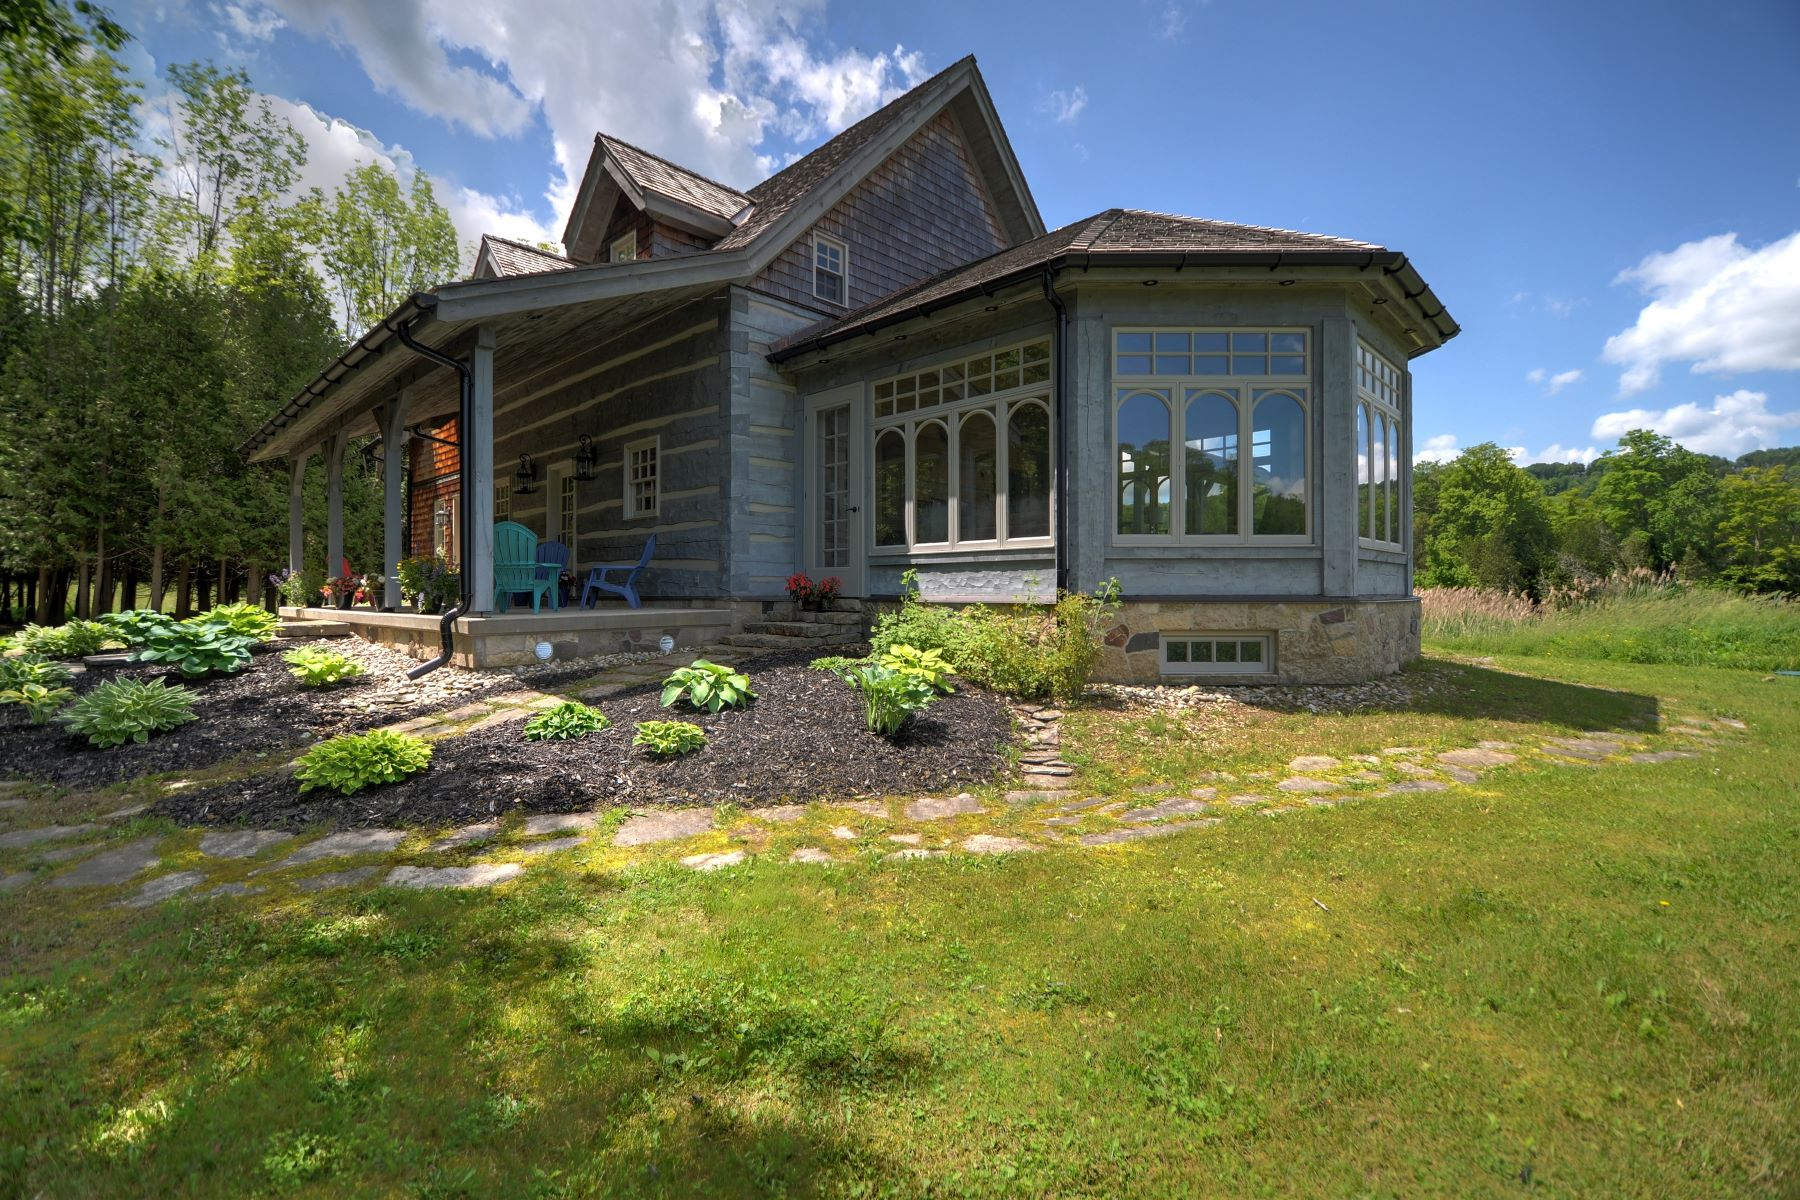 Single Family Homes for Sale at Charming Riverside Log Chalet 174708 30 Grey Rd Grey Highlands, Ontario N0C 1G0 Canada